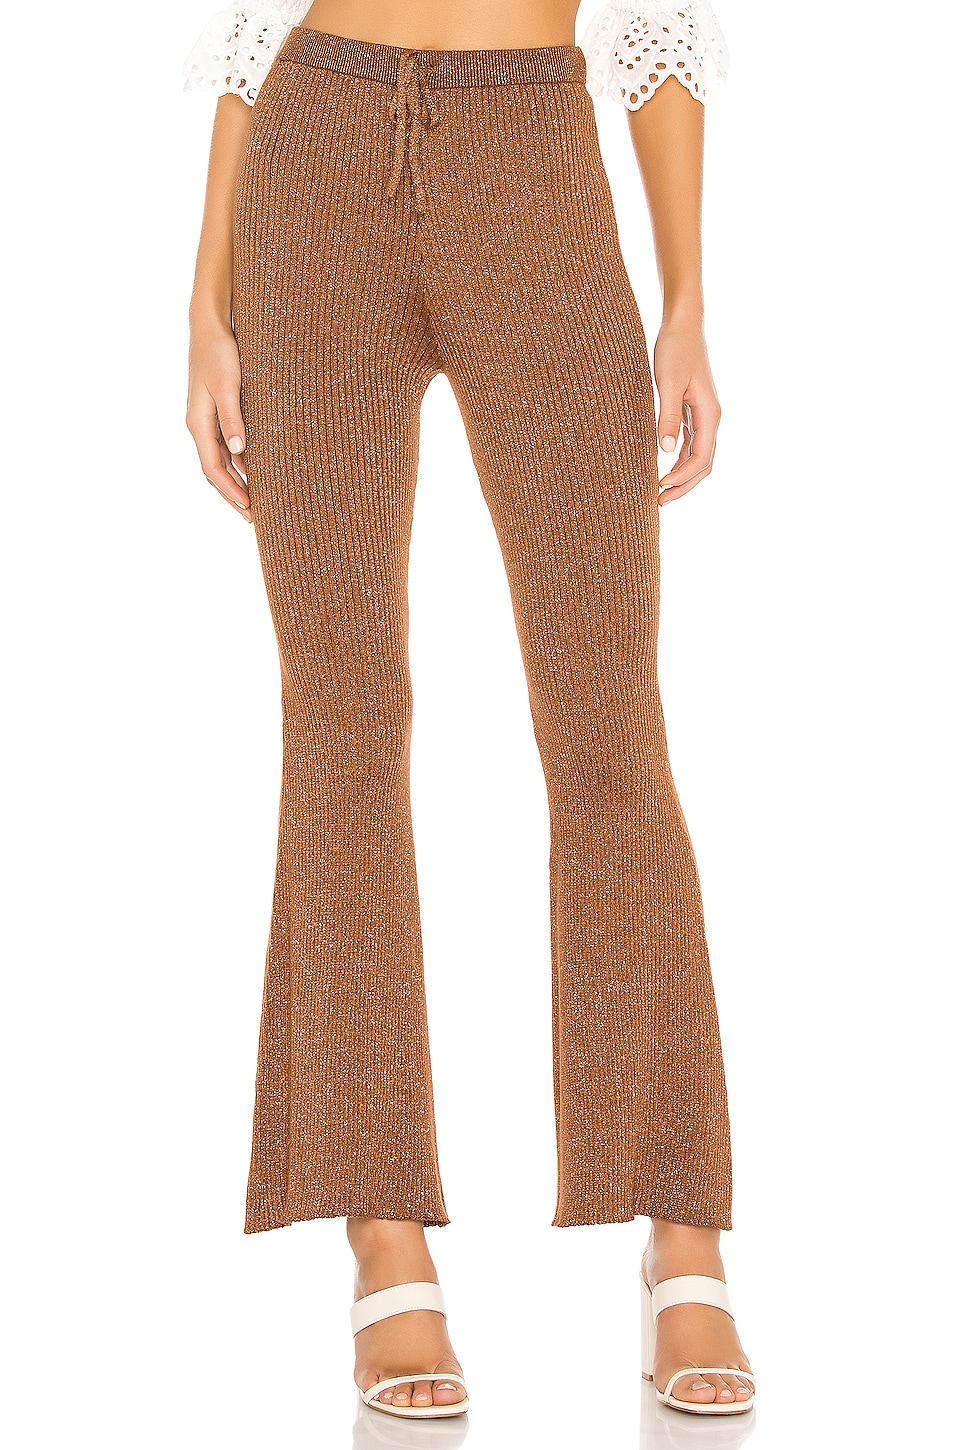 Spell & The Gypsy Collective PANTALON FLARE EN MAILLE MARGOT